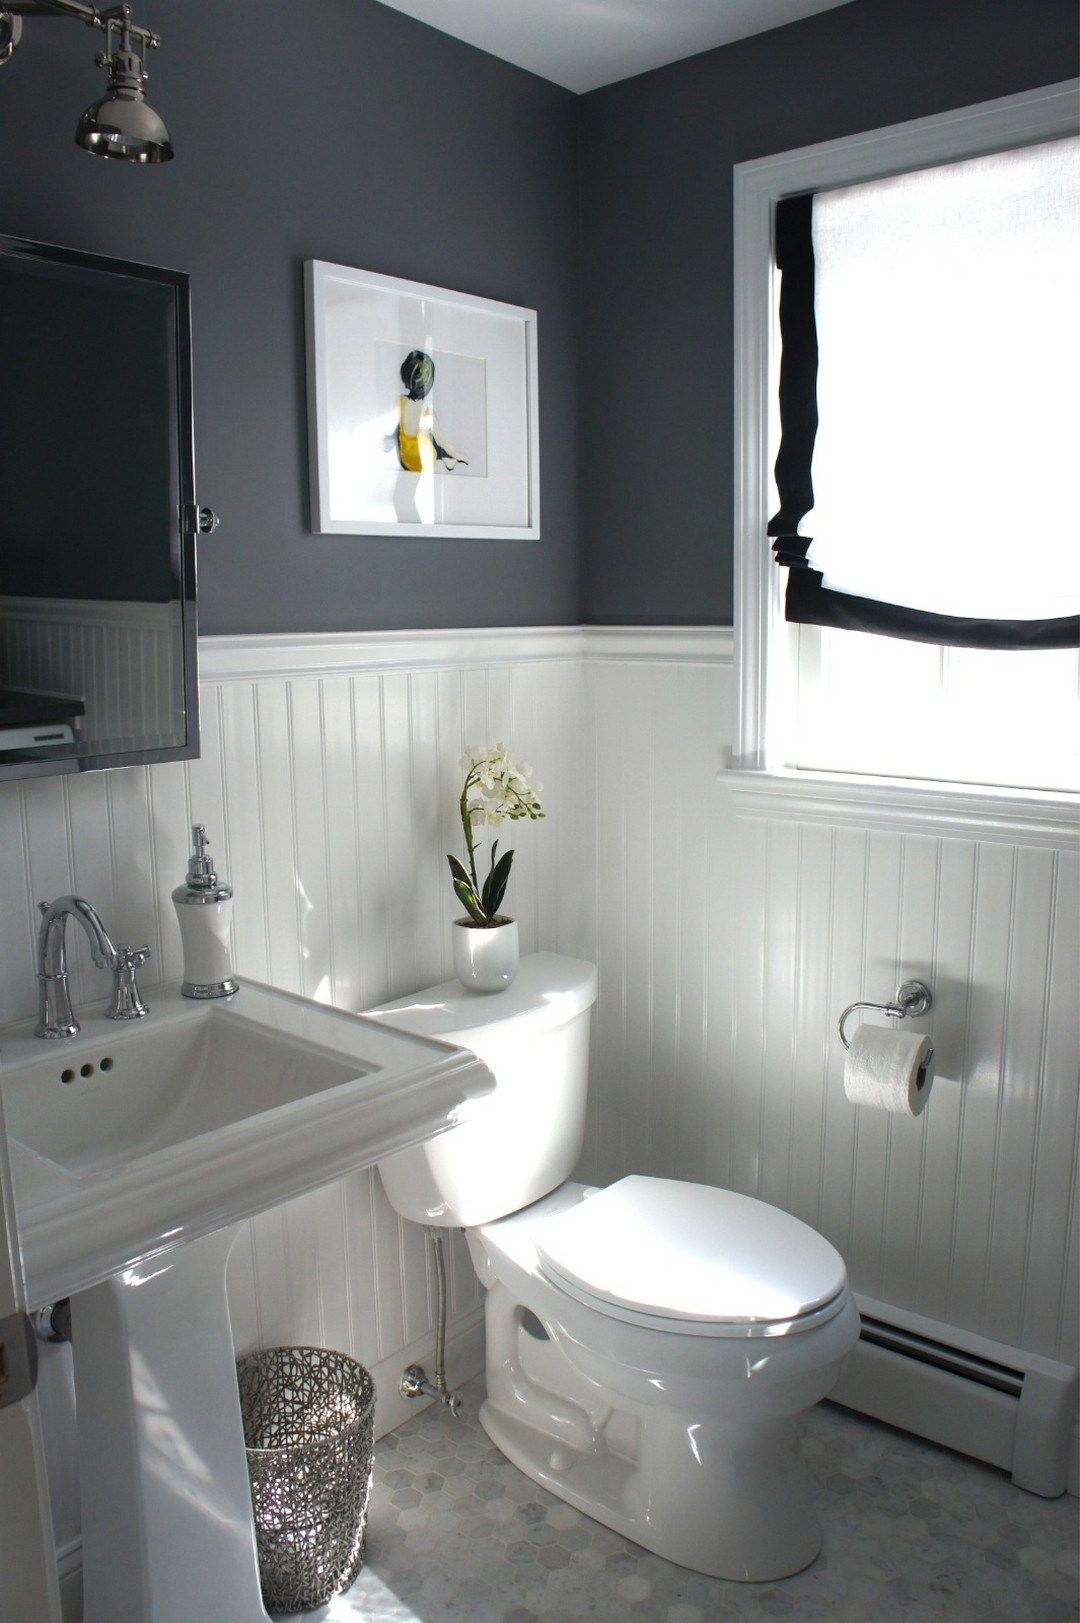 99 small master bathroom makeover ideas on a budget 48 for Small bathroom ideas 6x6